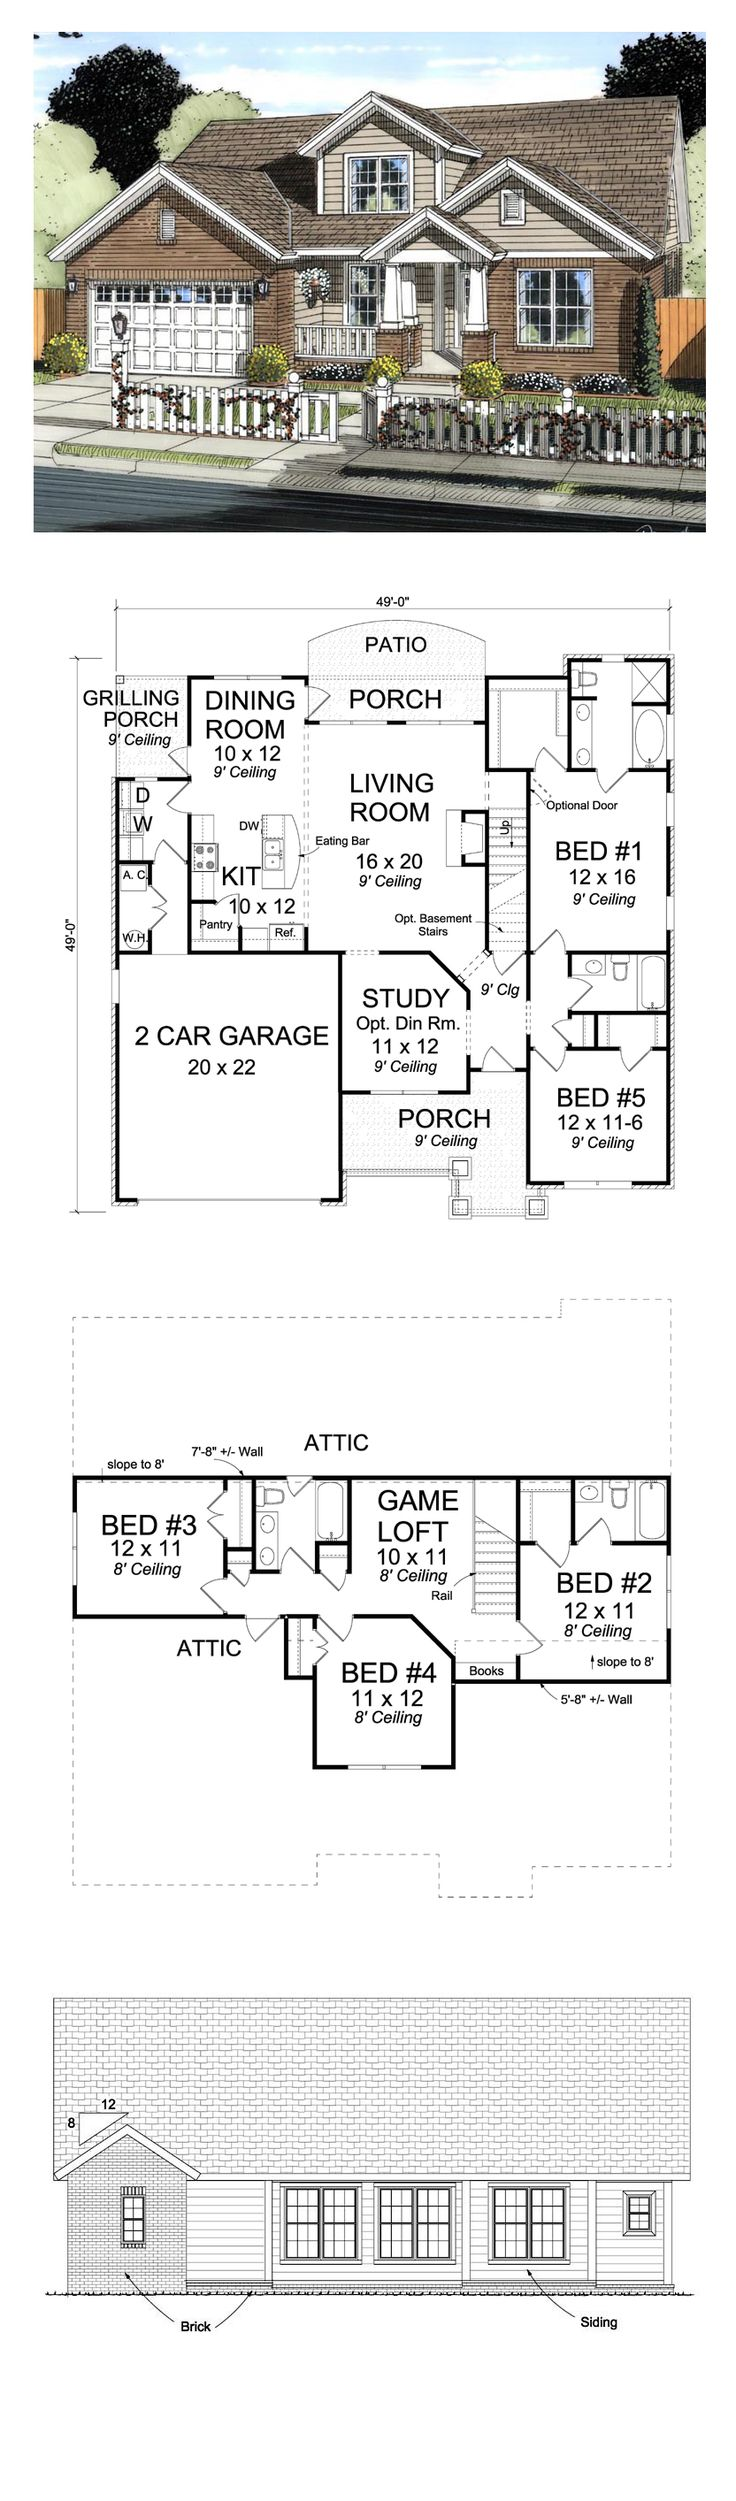 Craftsman House Plan 61421 | Total Living Area: 2317 sq. ft., 5 bedrooms and 4 bathrooms. #houseplan #craftsmanhome